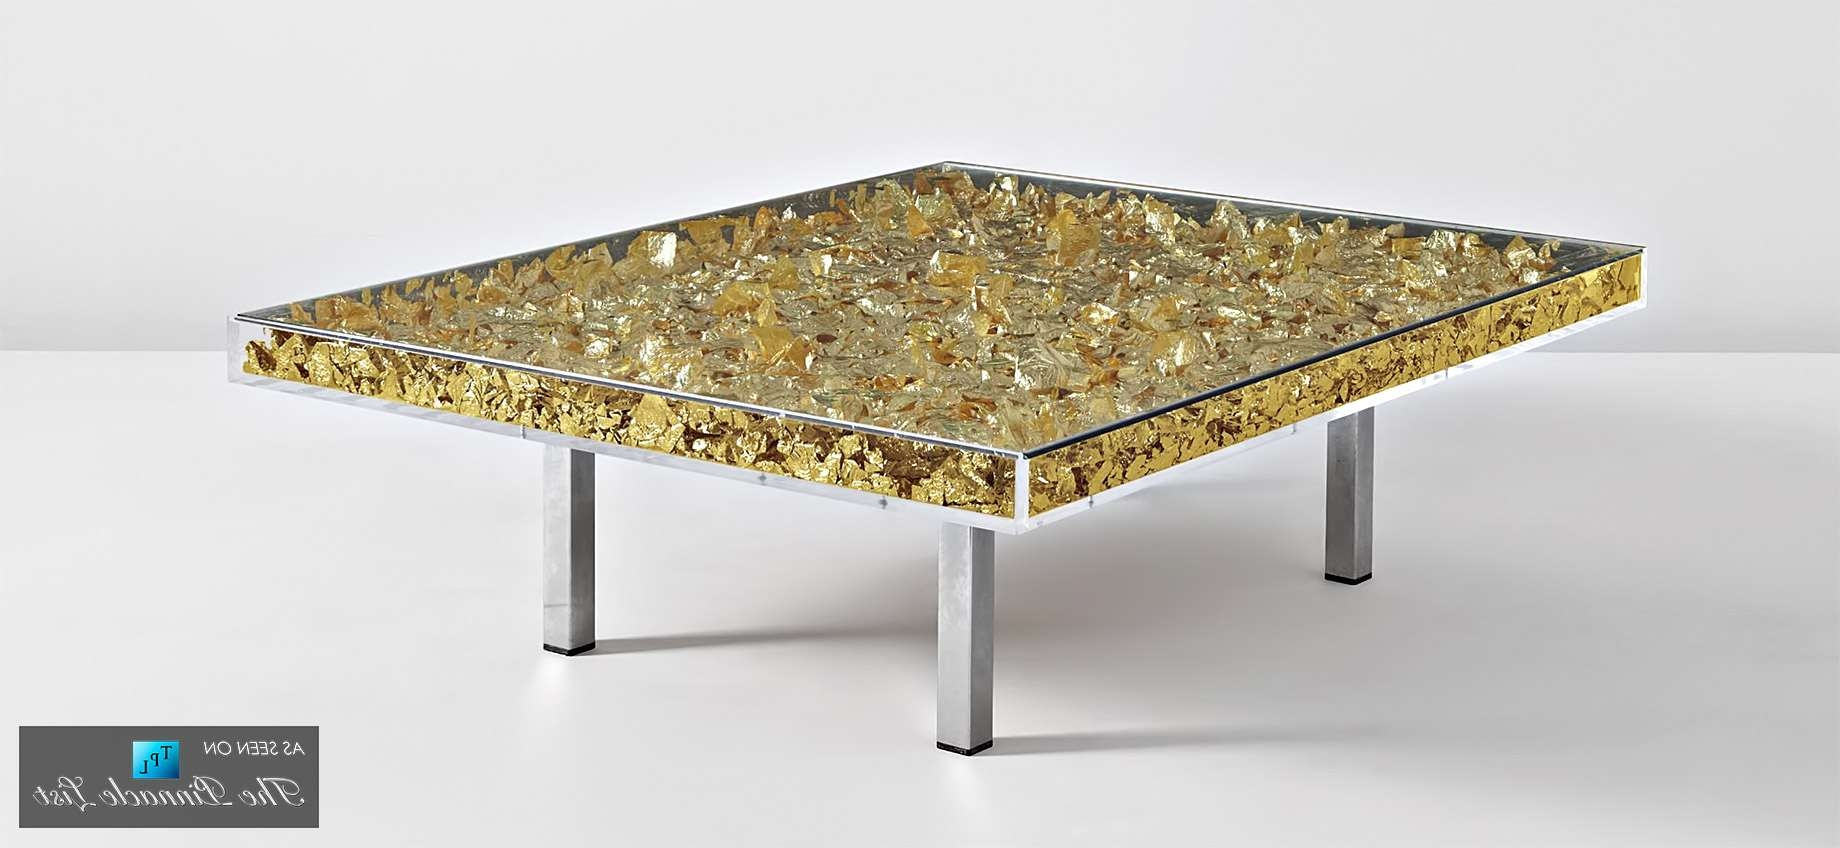 Contemporary Art As Modern Luxury Furniture – Spotlighting The In Well Known Art Coffee Tables (View 6 of 20)